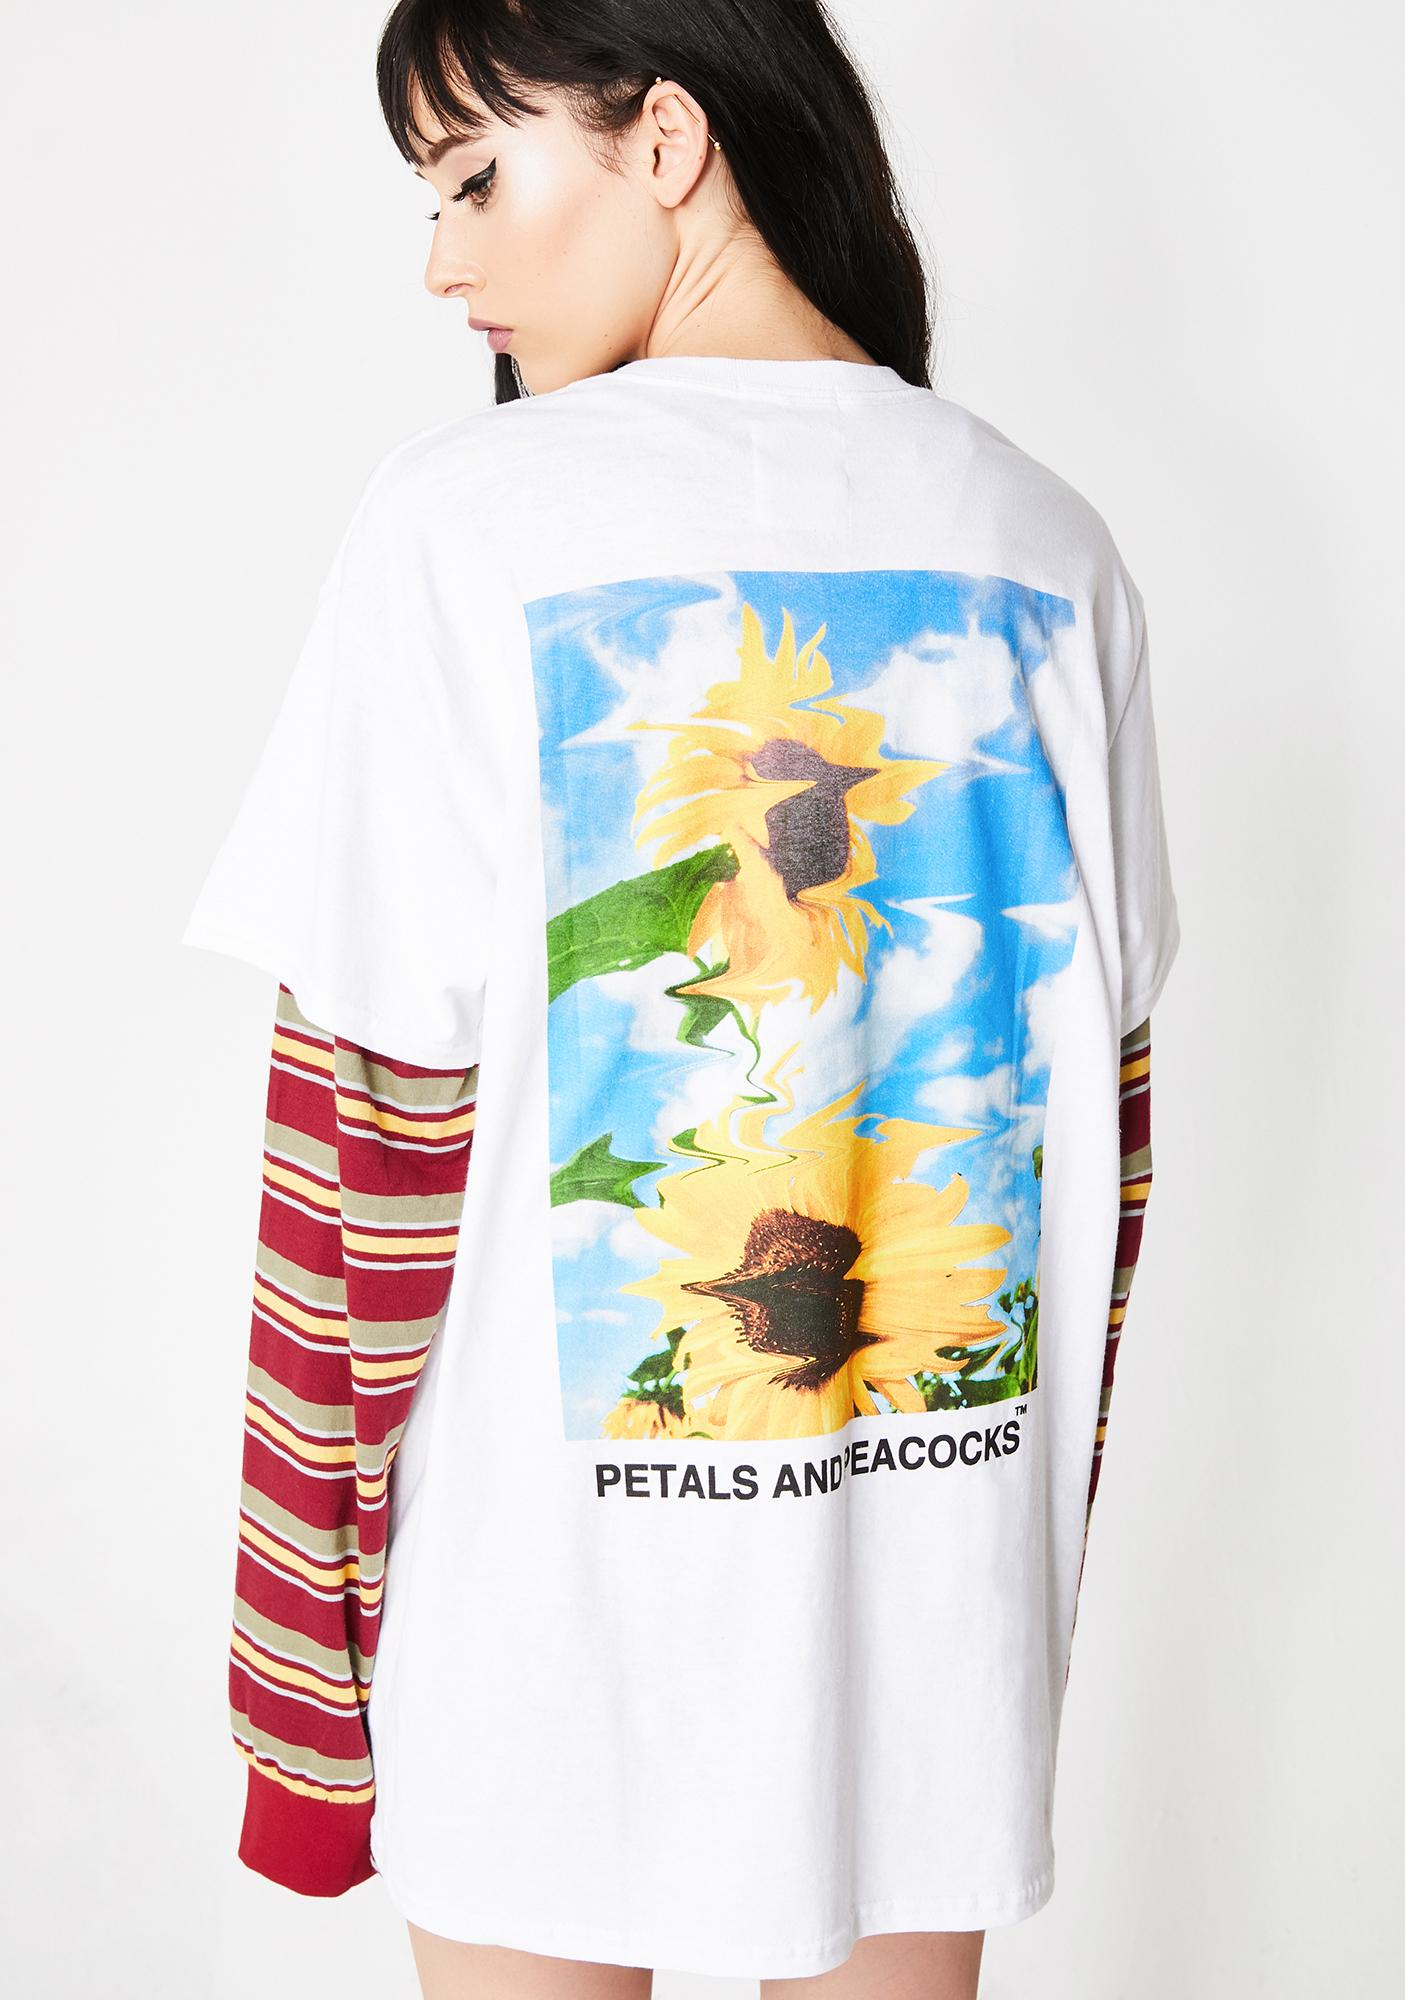 Petals and Peacocks Blurry Tee